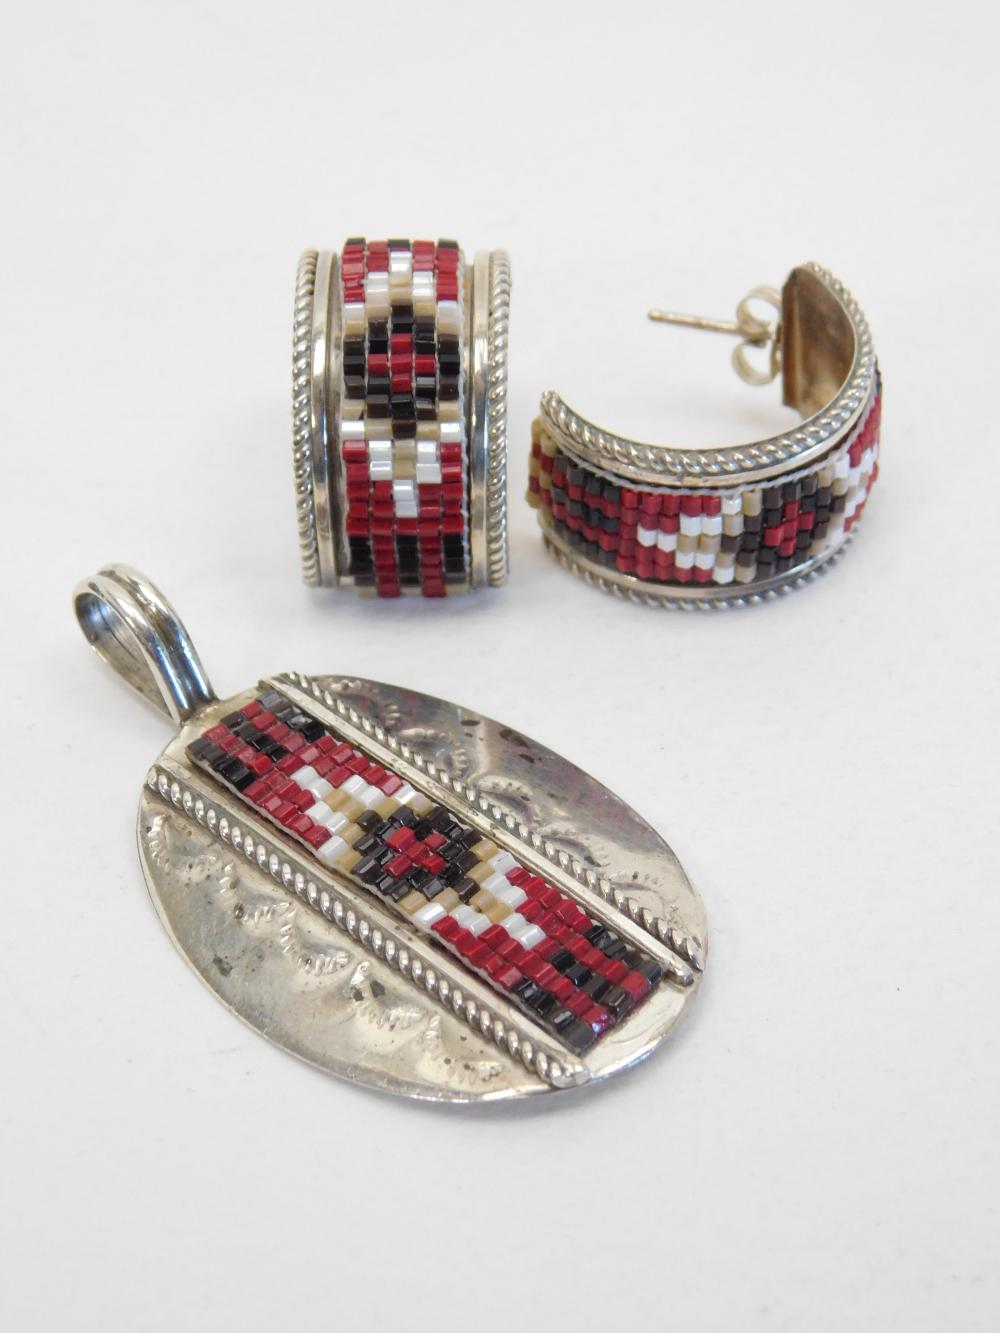 Vintage Native American Sterling Silver Mosaic Beadwork Pendant & Earrings Set 11G